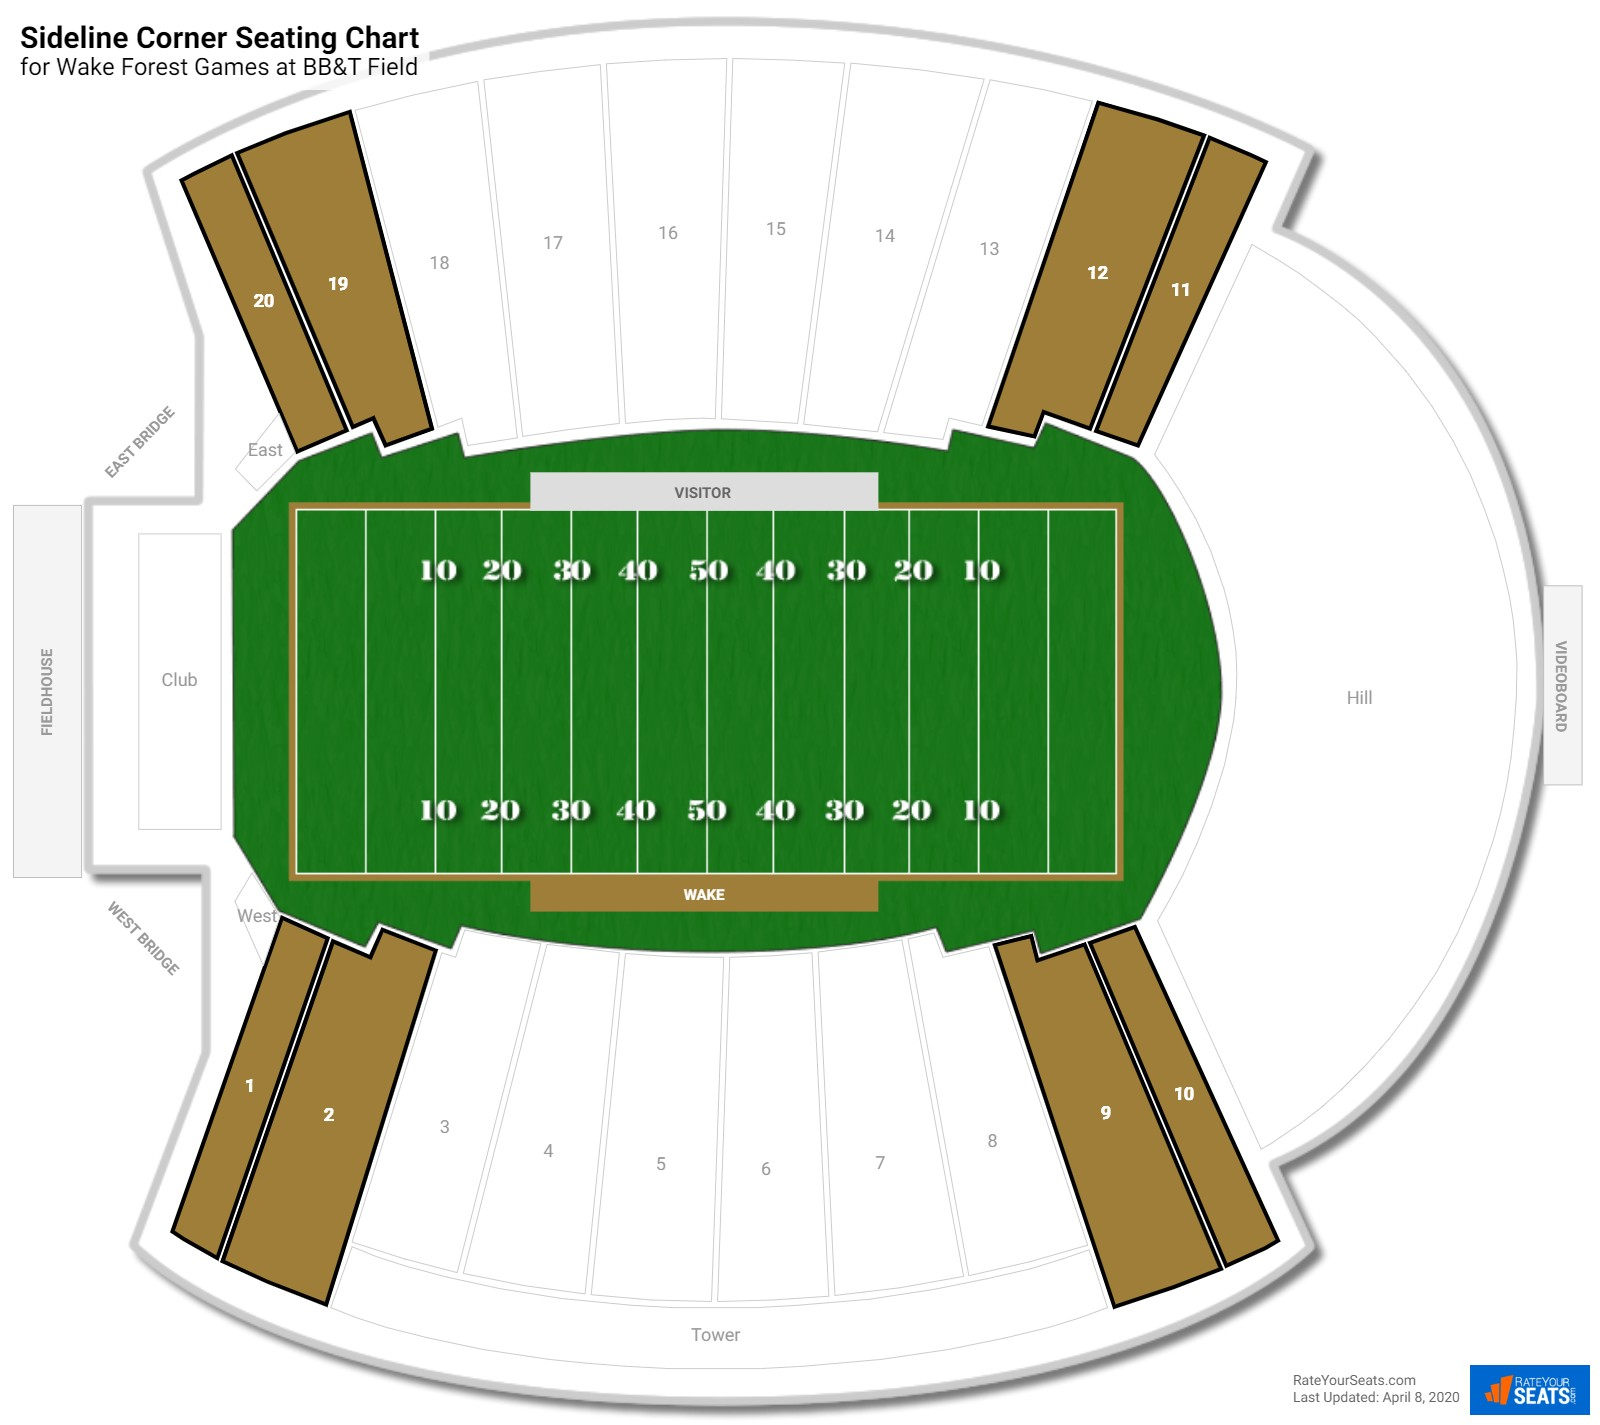 BB&T Field Sideline Corner seating chart